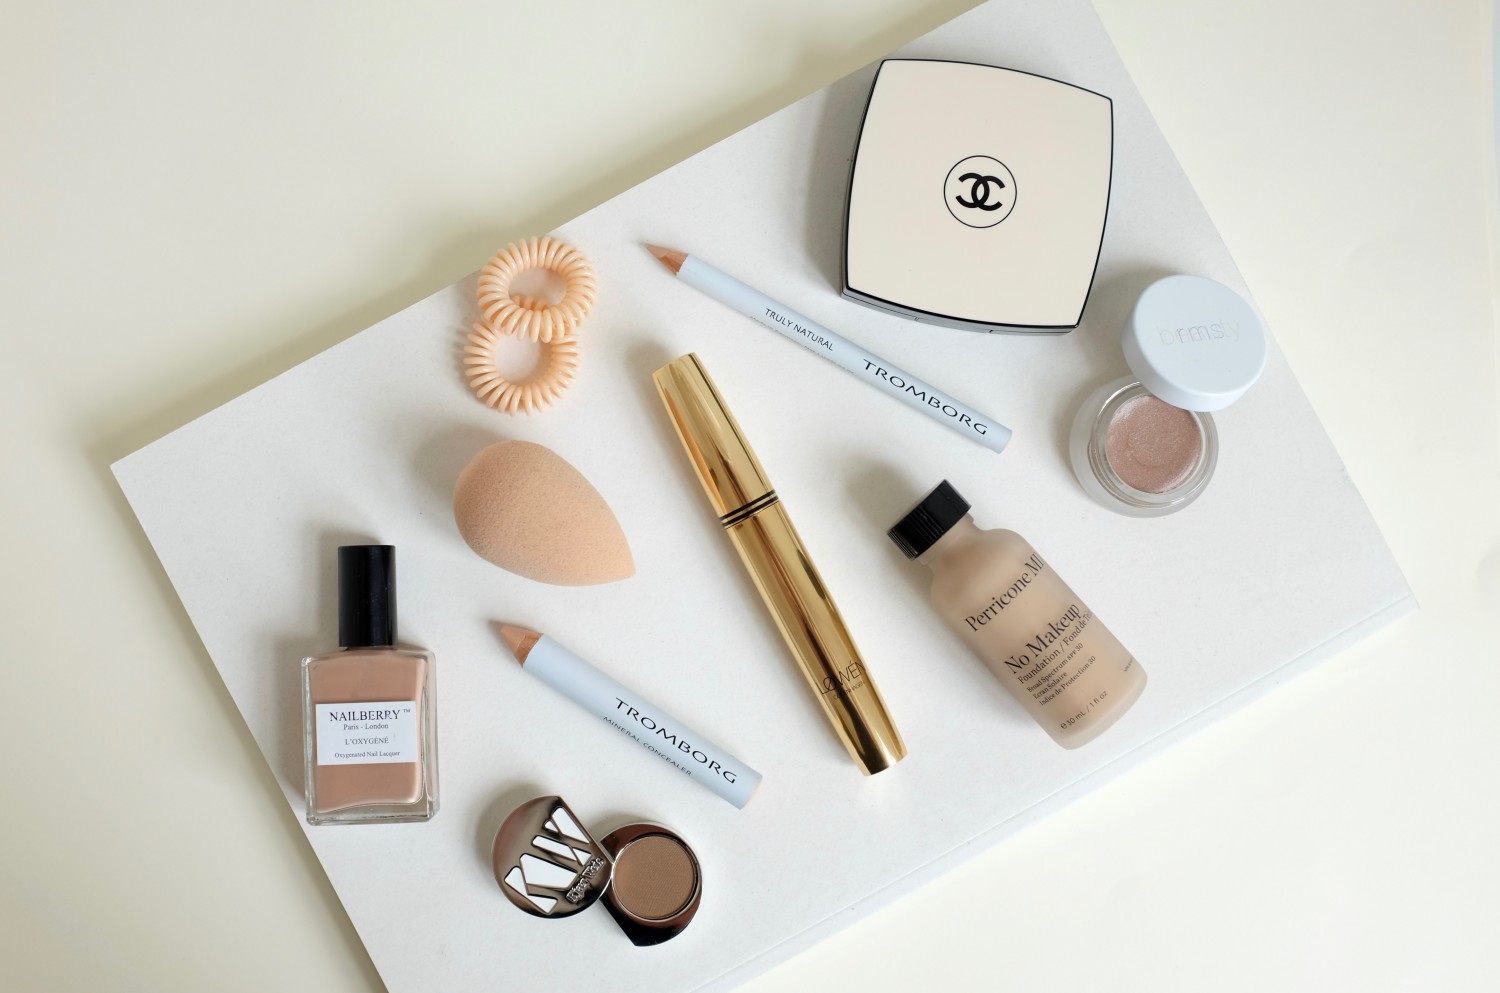 Get that naturally flawless no-makeup look with a few key products that will make your skin look amazing